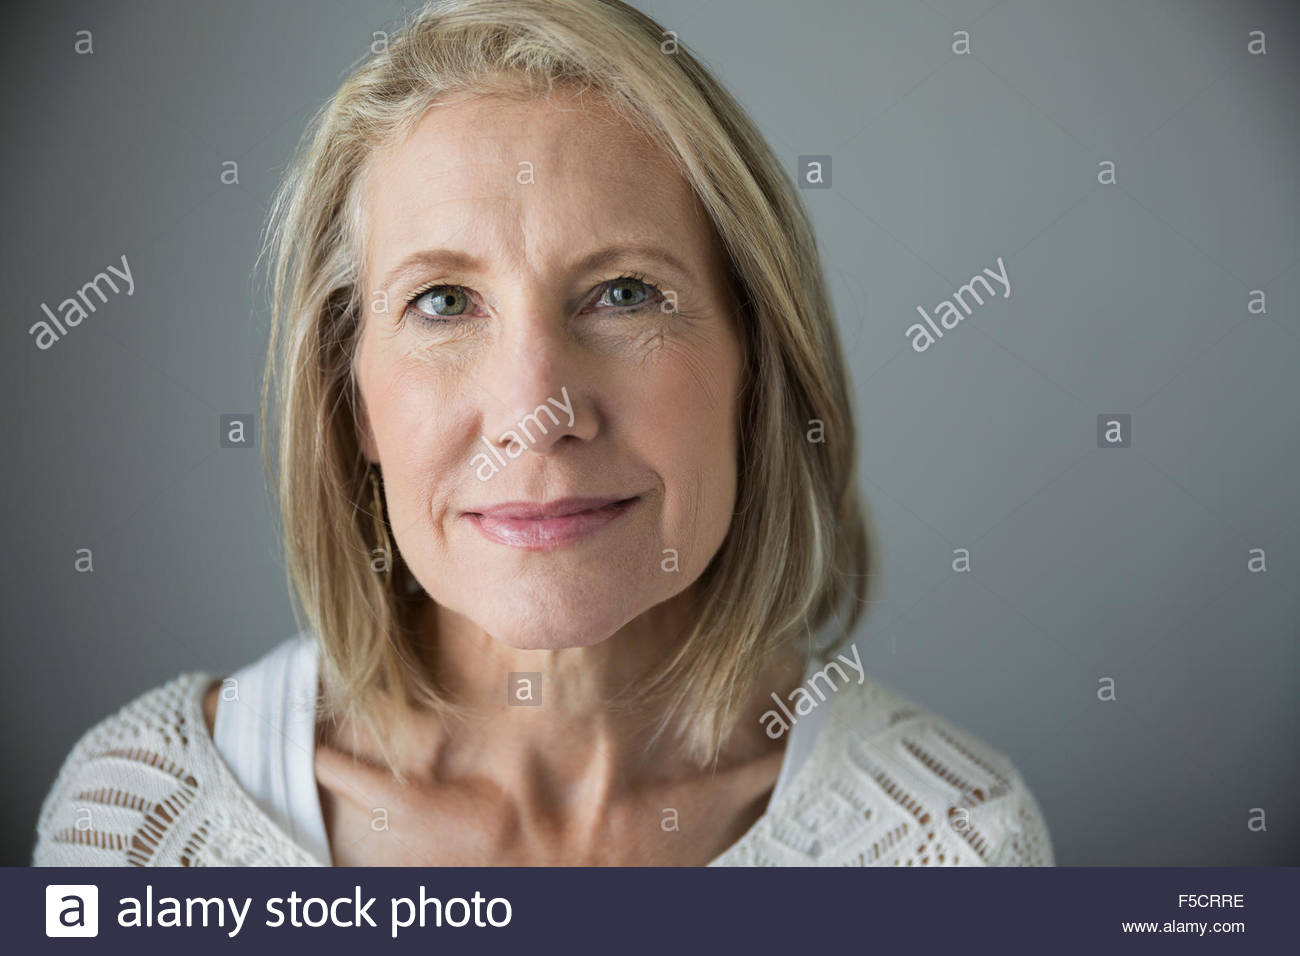 Portrait smiling senior woman with blonde hair - Stock Image